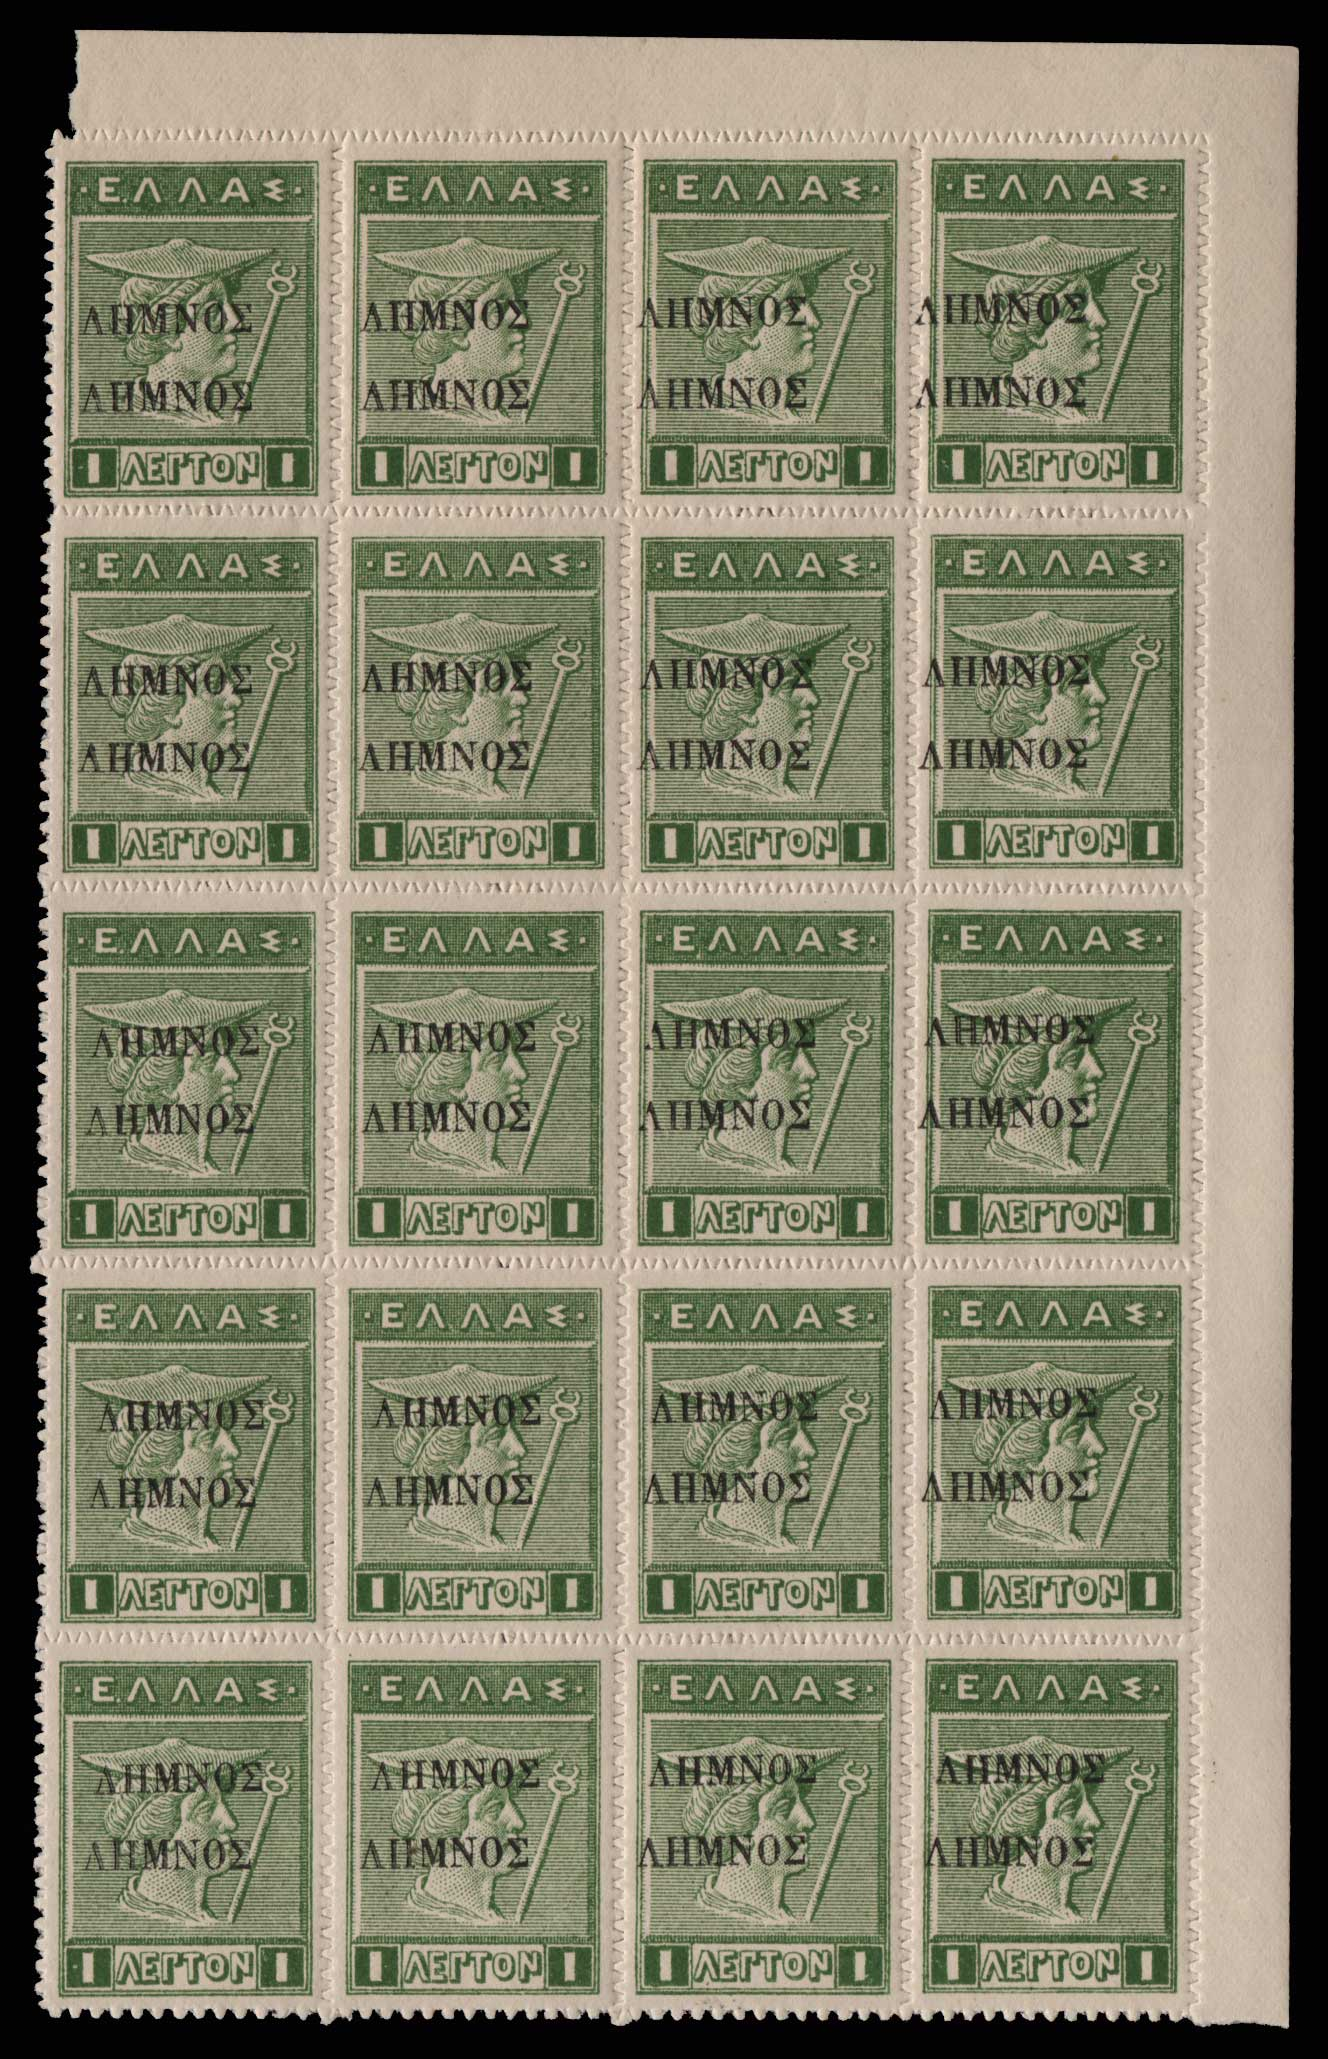 Lot 701 - -  1911 - 1923 λημνοσ ovpt. -  Athens Auctions Public Auction 84 General Stamp Sale